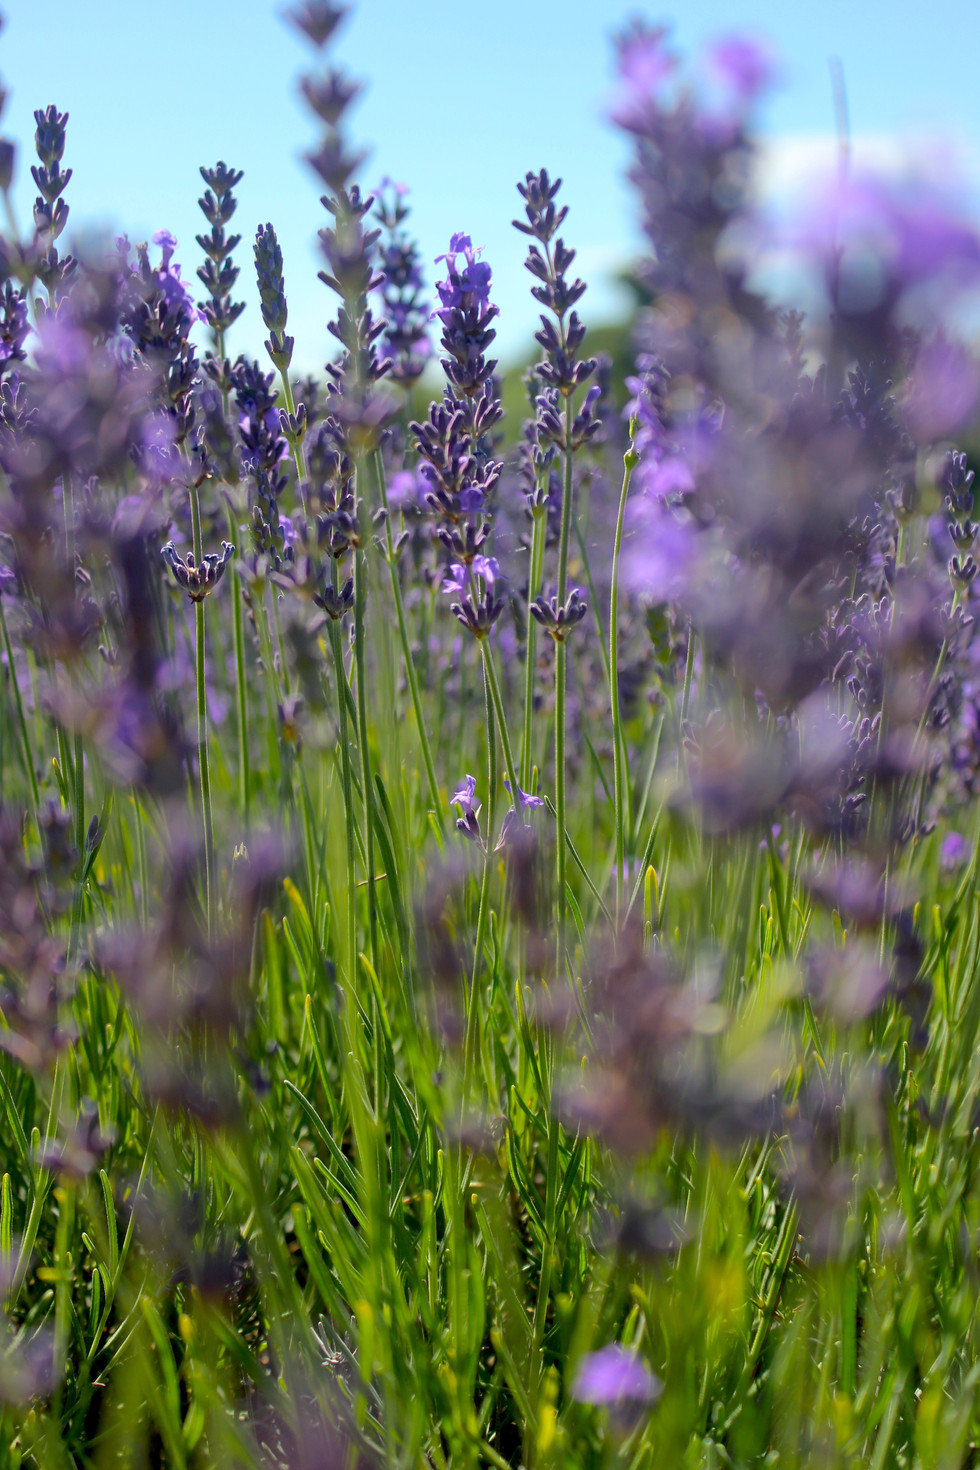 Mayfield, a lavender field near London